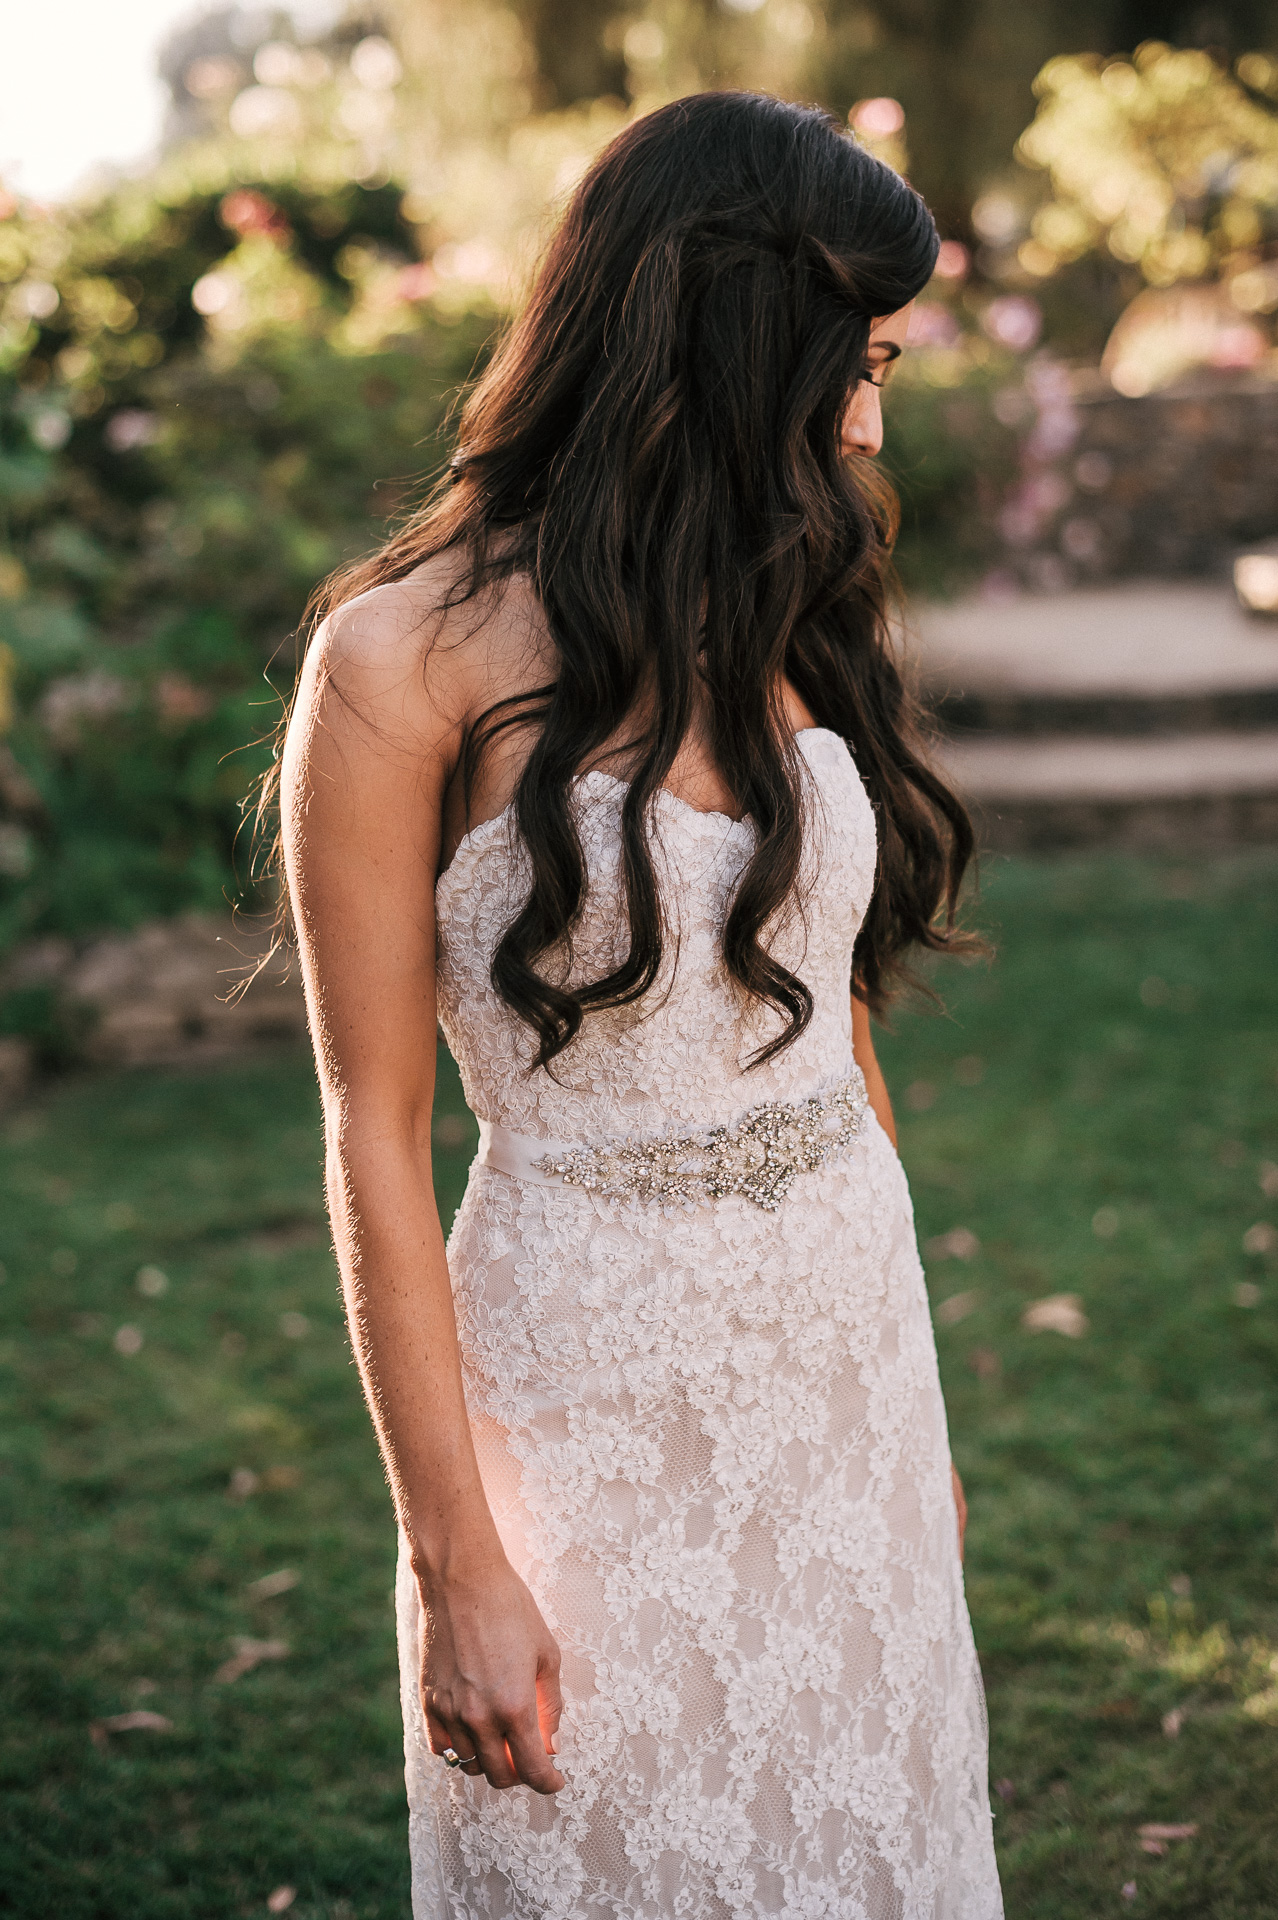 Beautiful bridal portrait during sunset in the gardens of Quail Haven Farm.